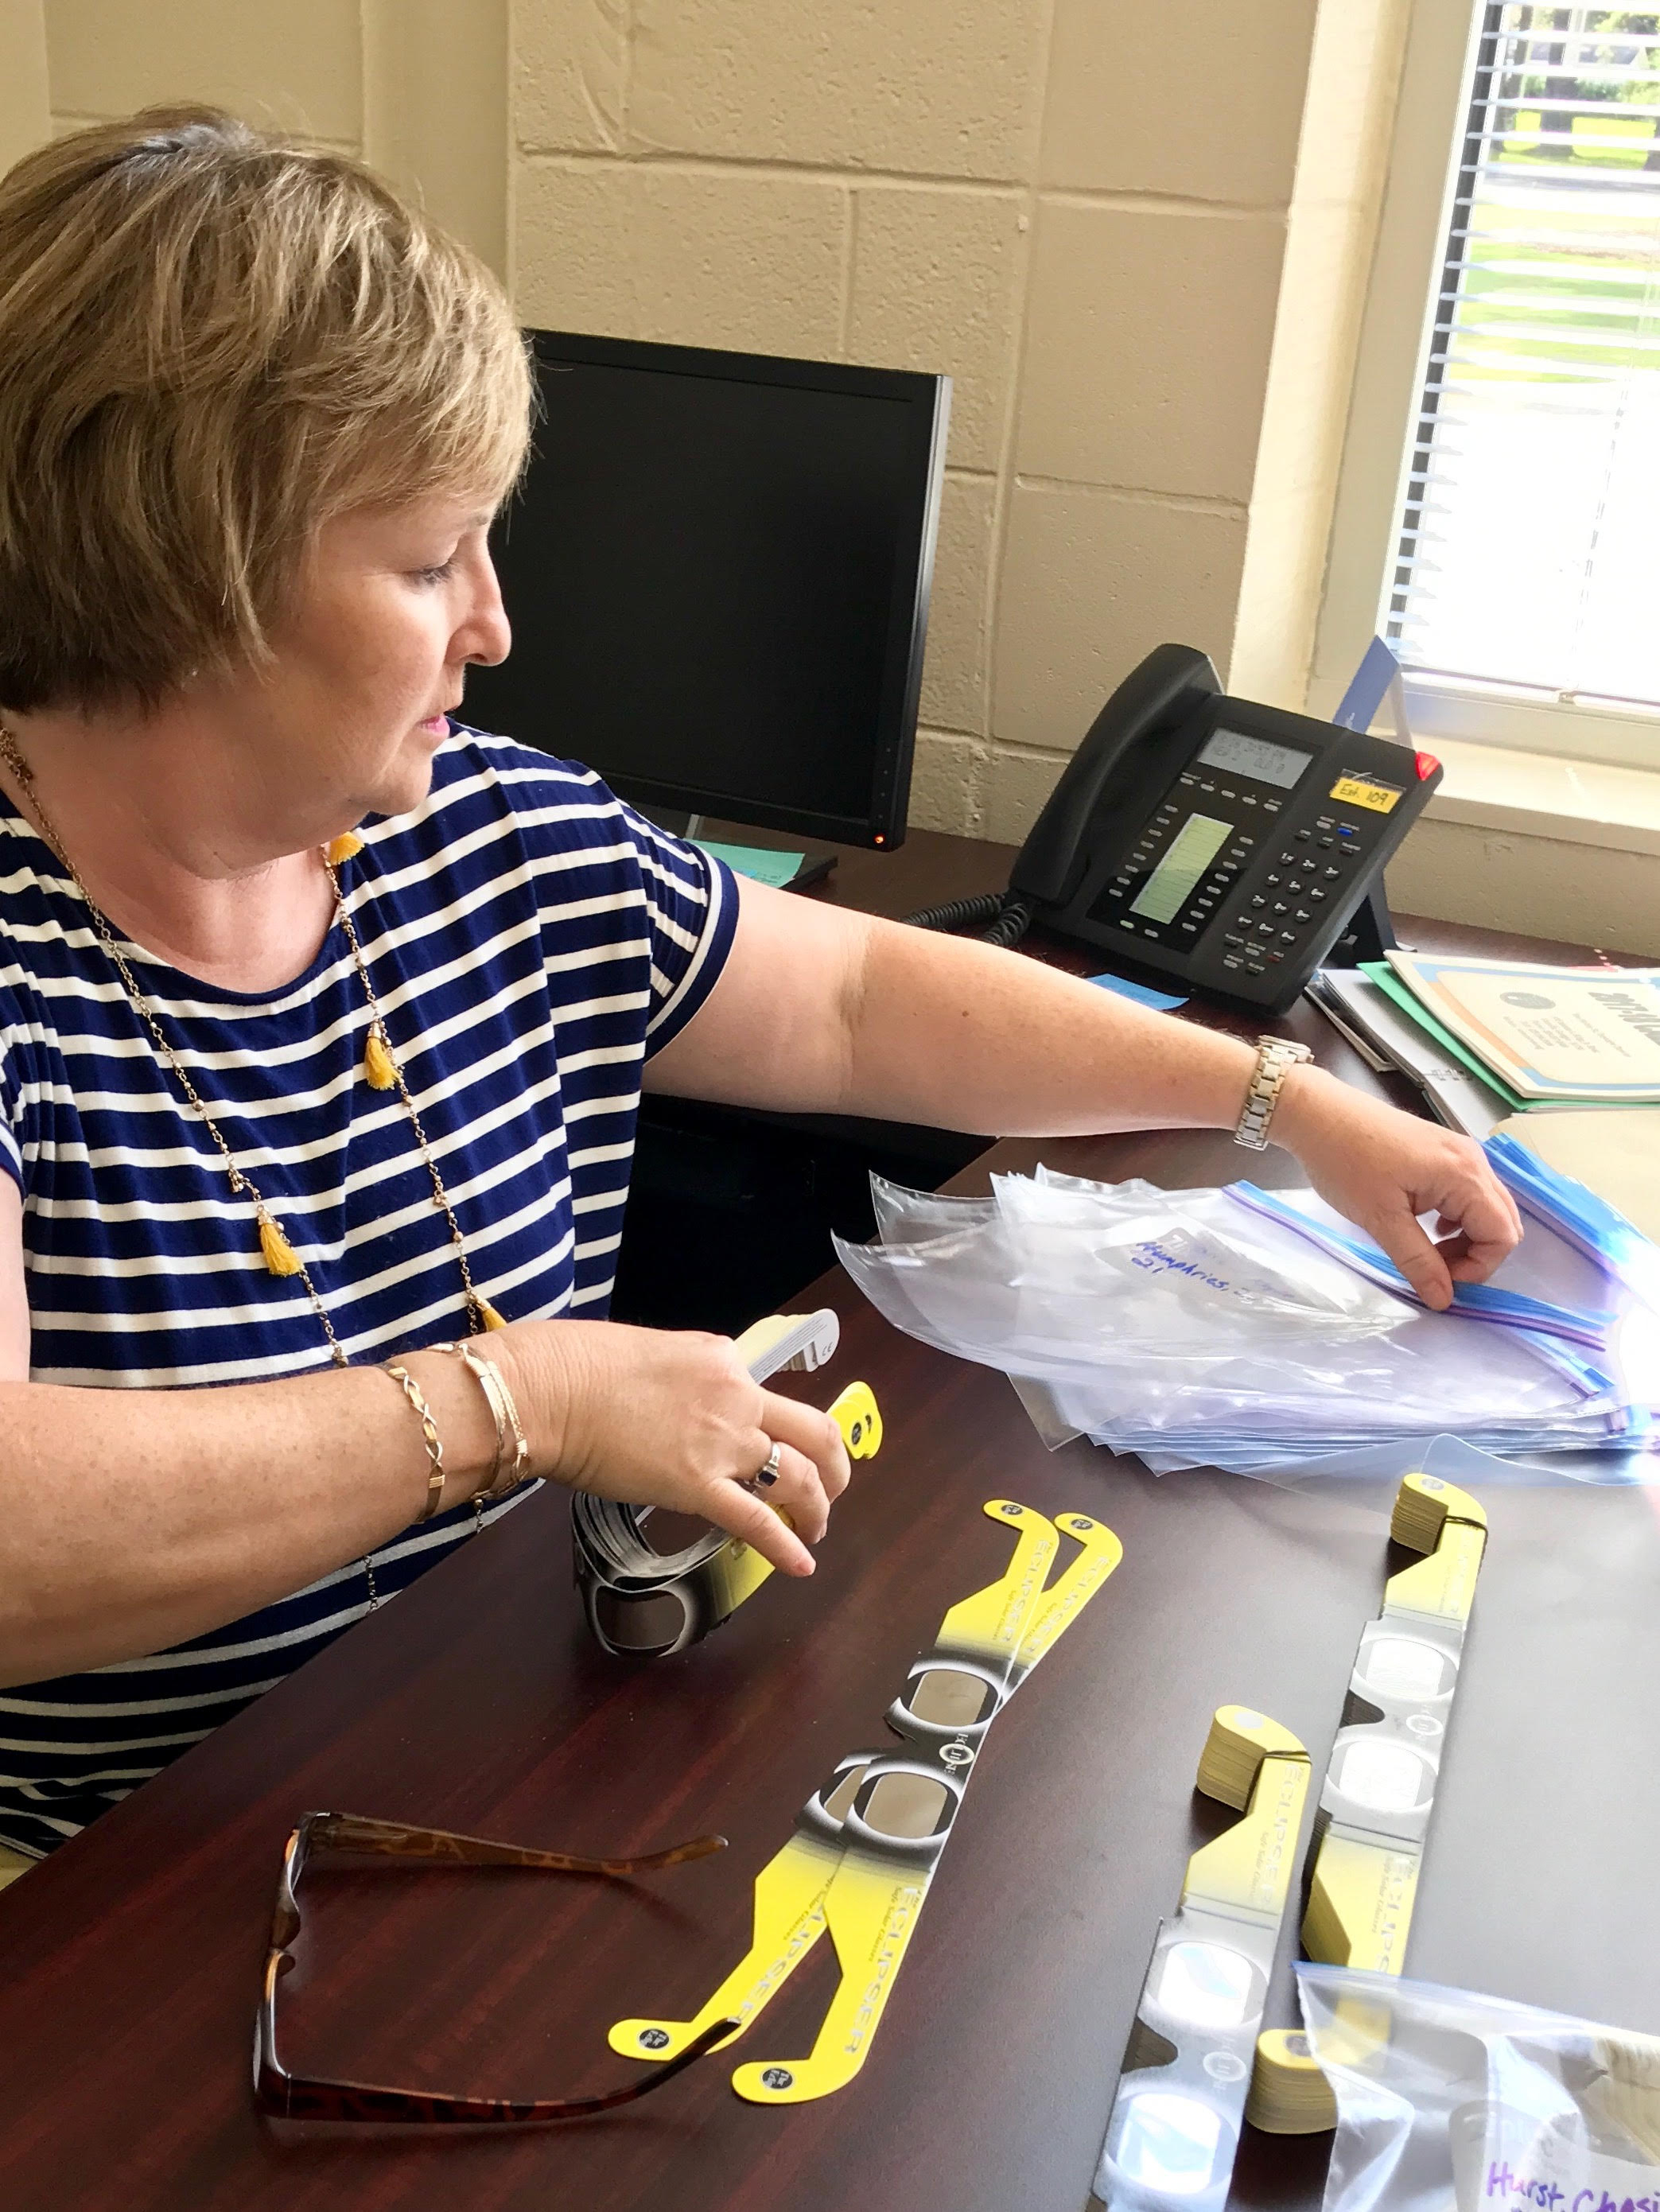 Robin Shaver, Elementary Curriculum Coordinator working with solar eclipse glasses for schools